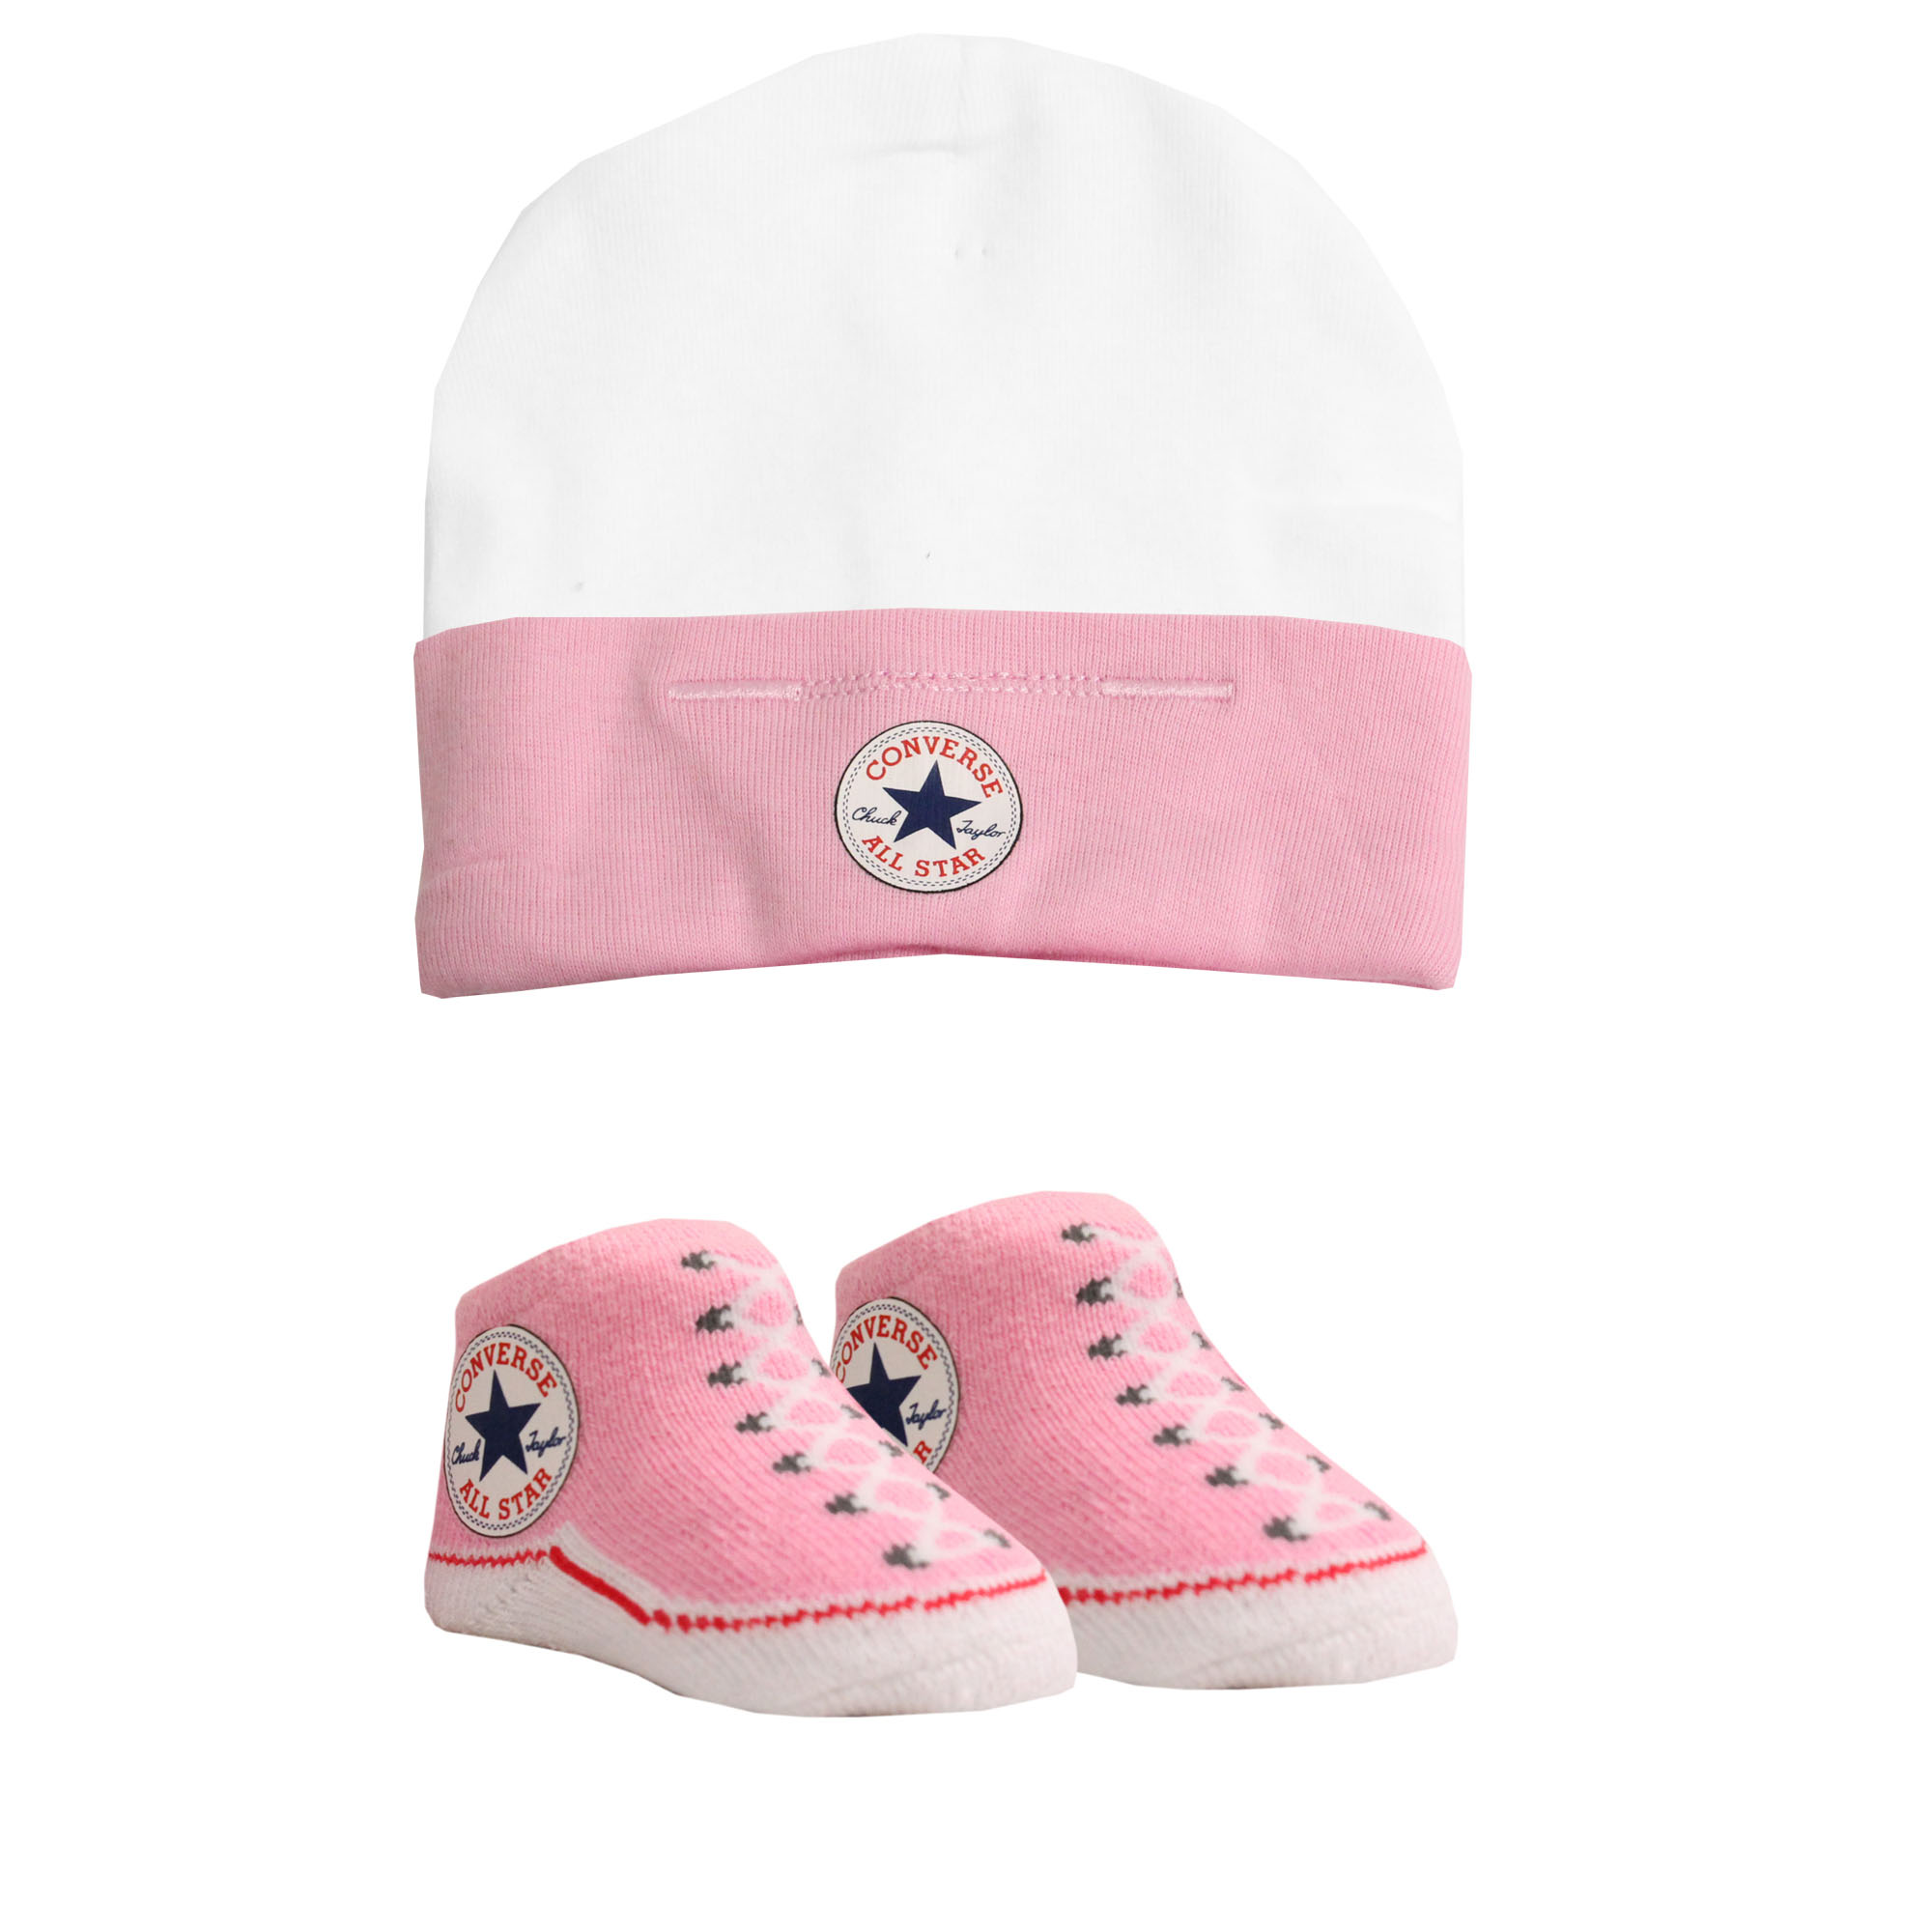 CONVERSE Baby Hat & Sock Set 0 6 Months